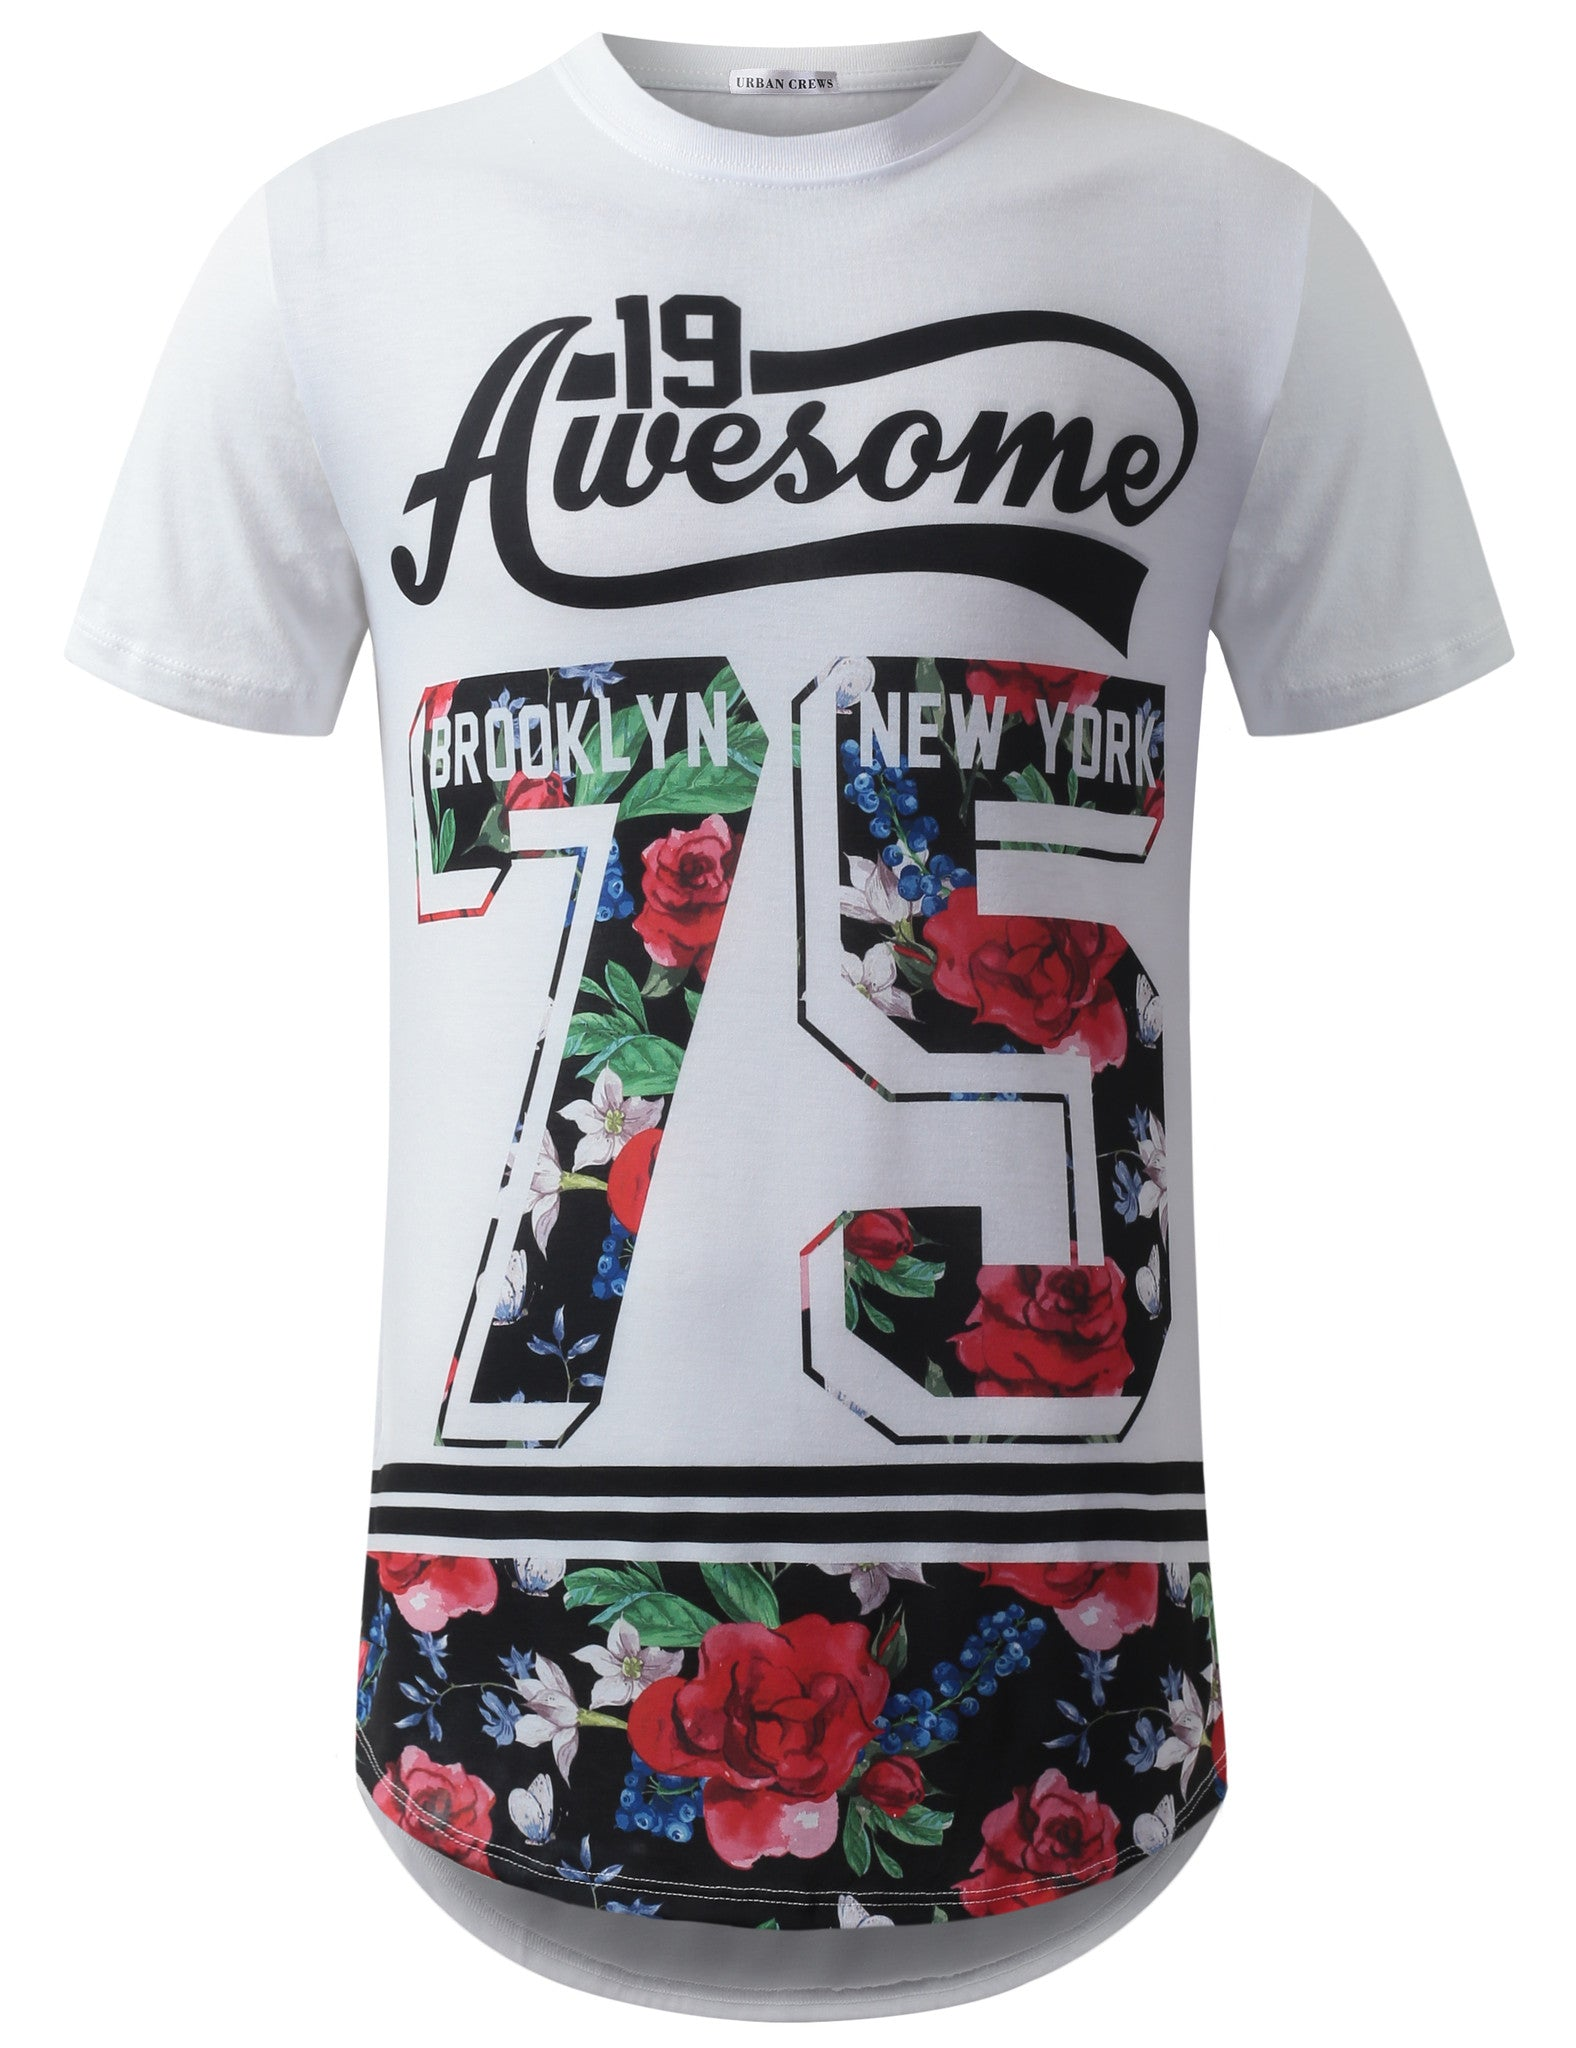 WHITE Awesome 75 Floral Longline Crewneck Tshirts- URBANCREWS